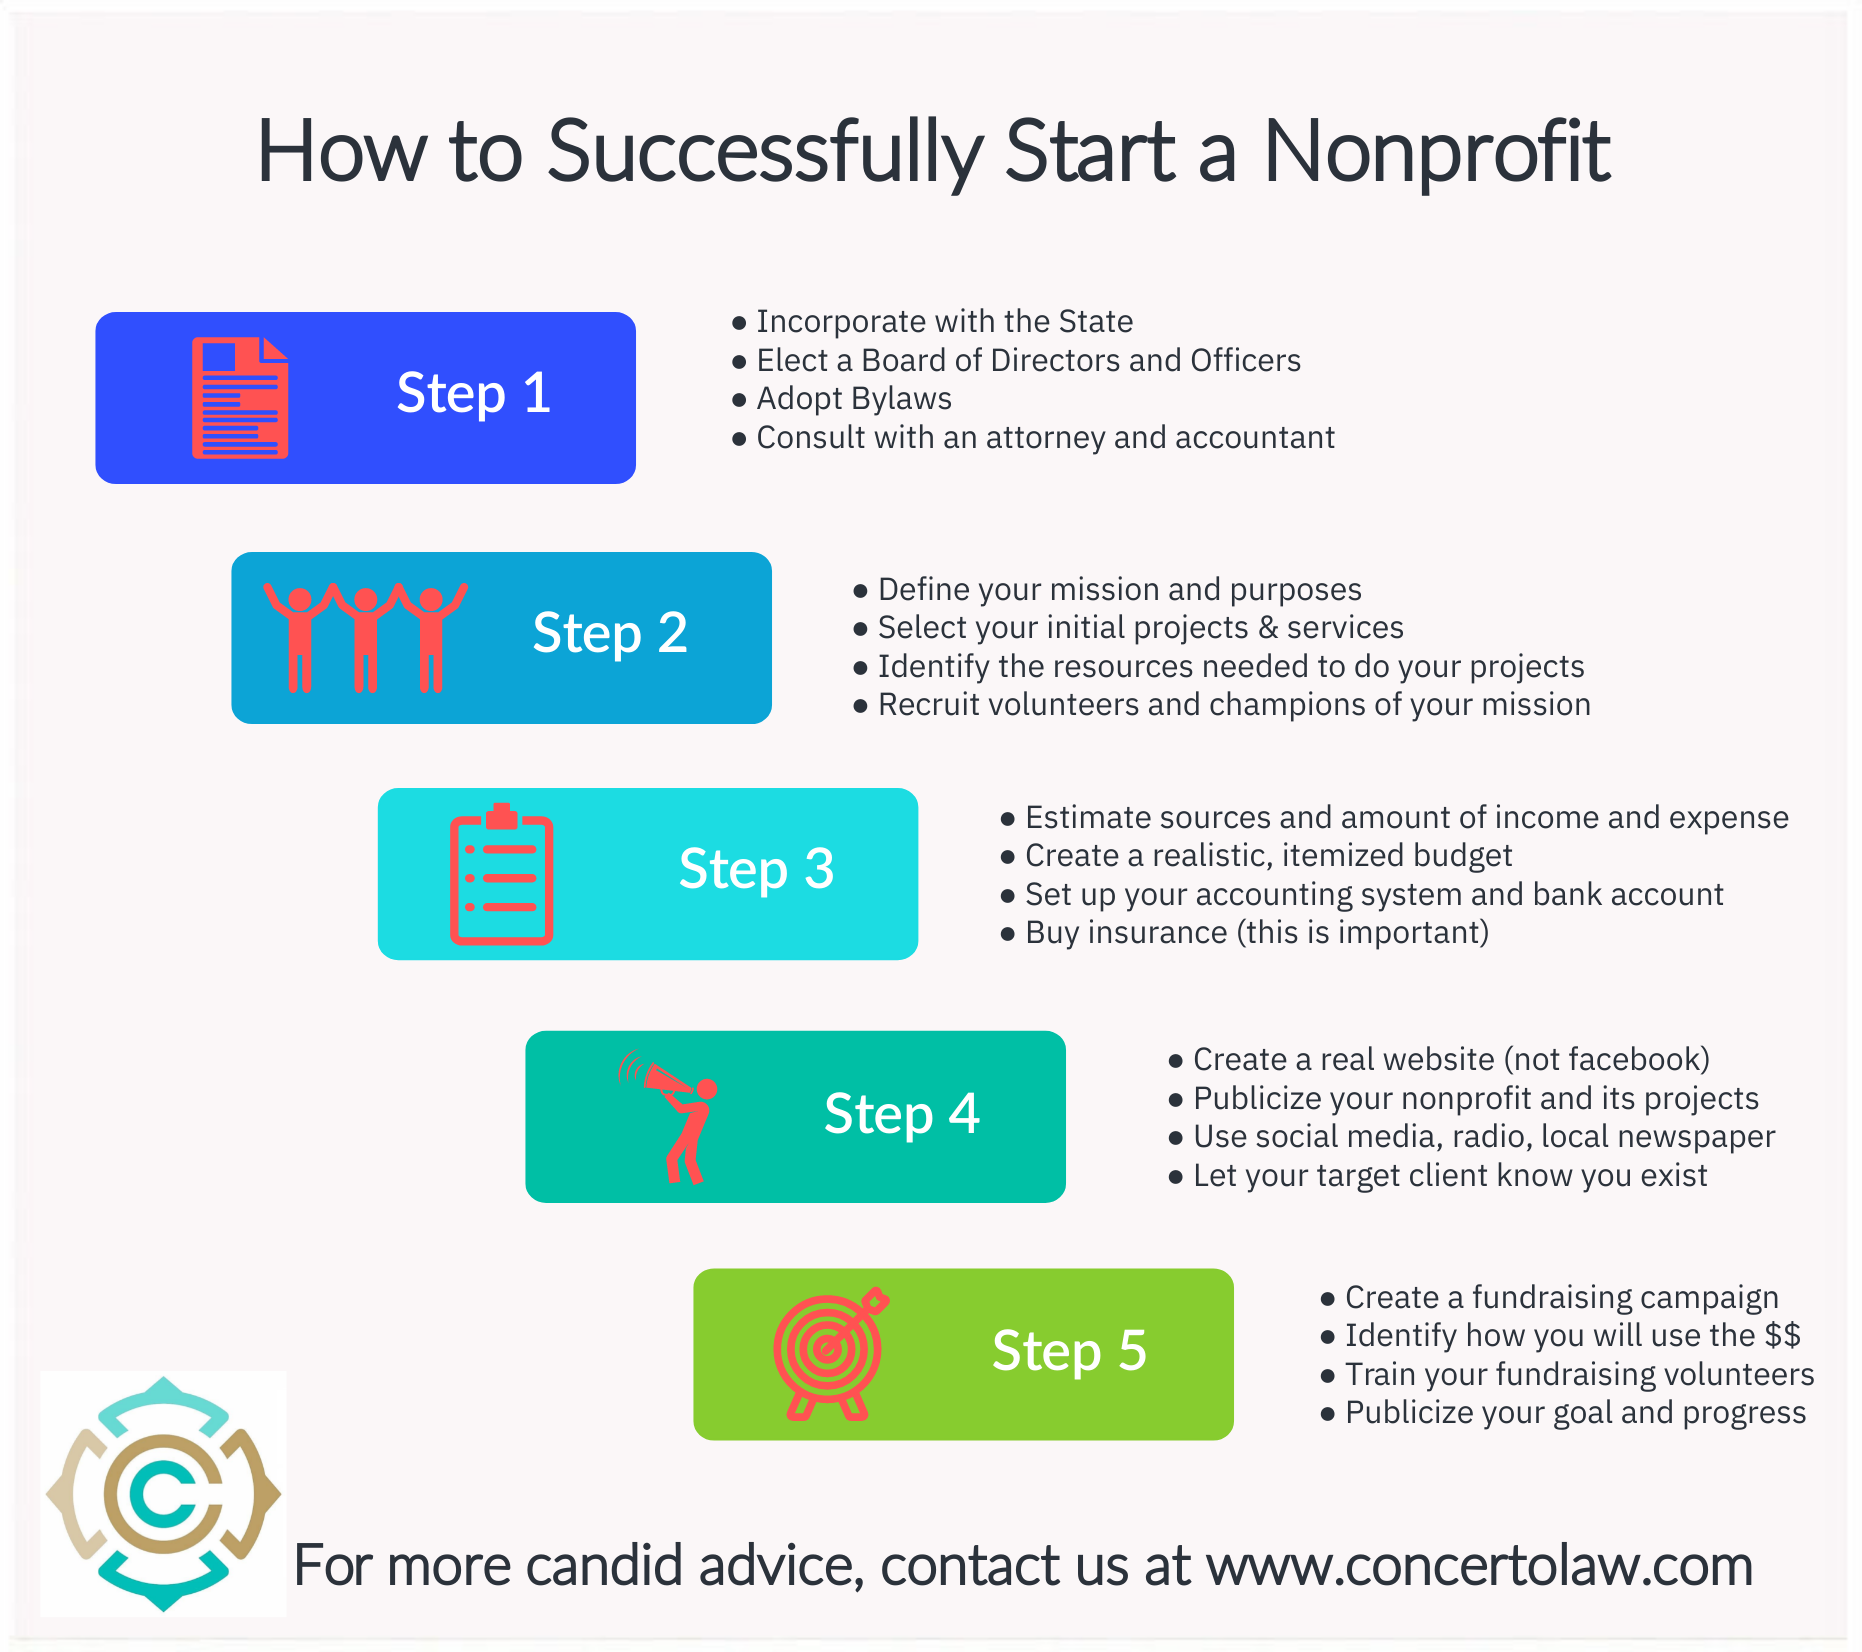 5 Things New Nonprofits Must Do